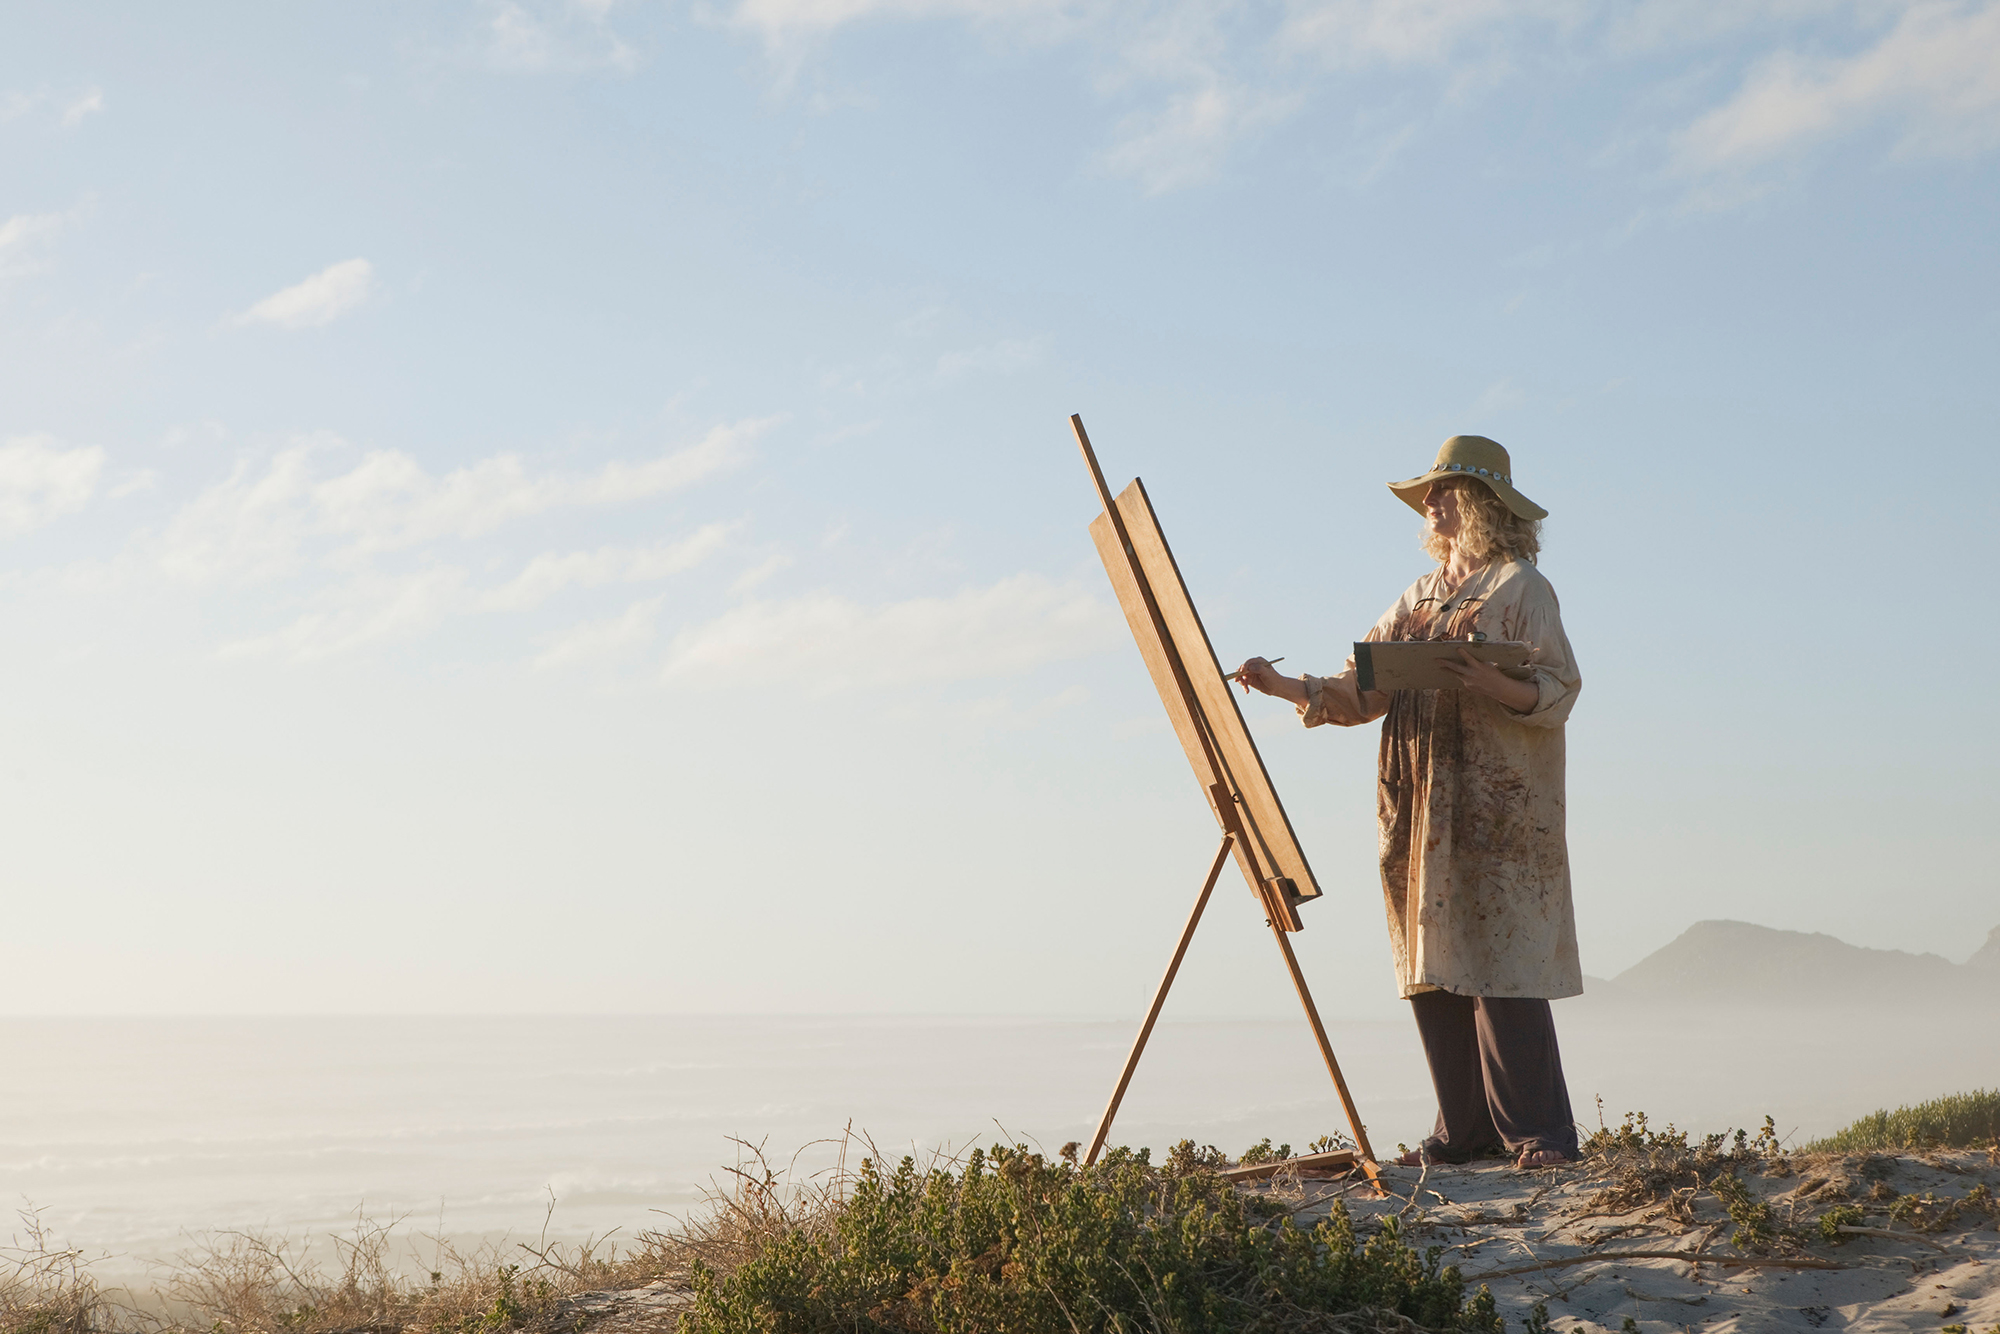 Painting by the sea